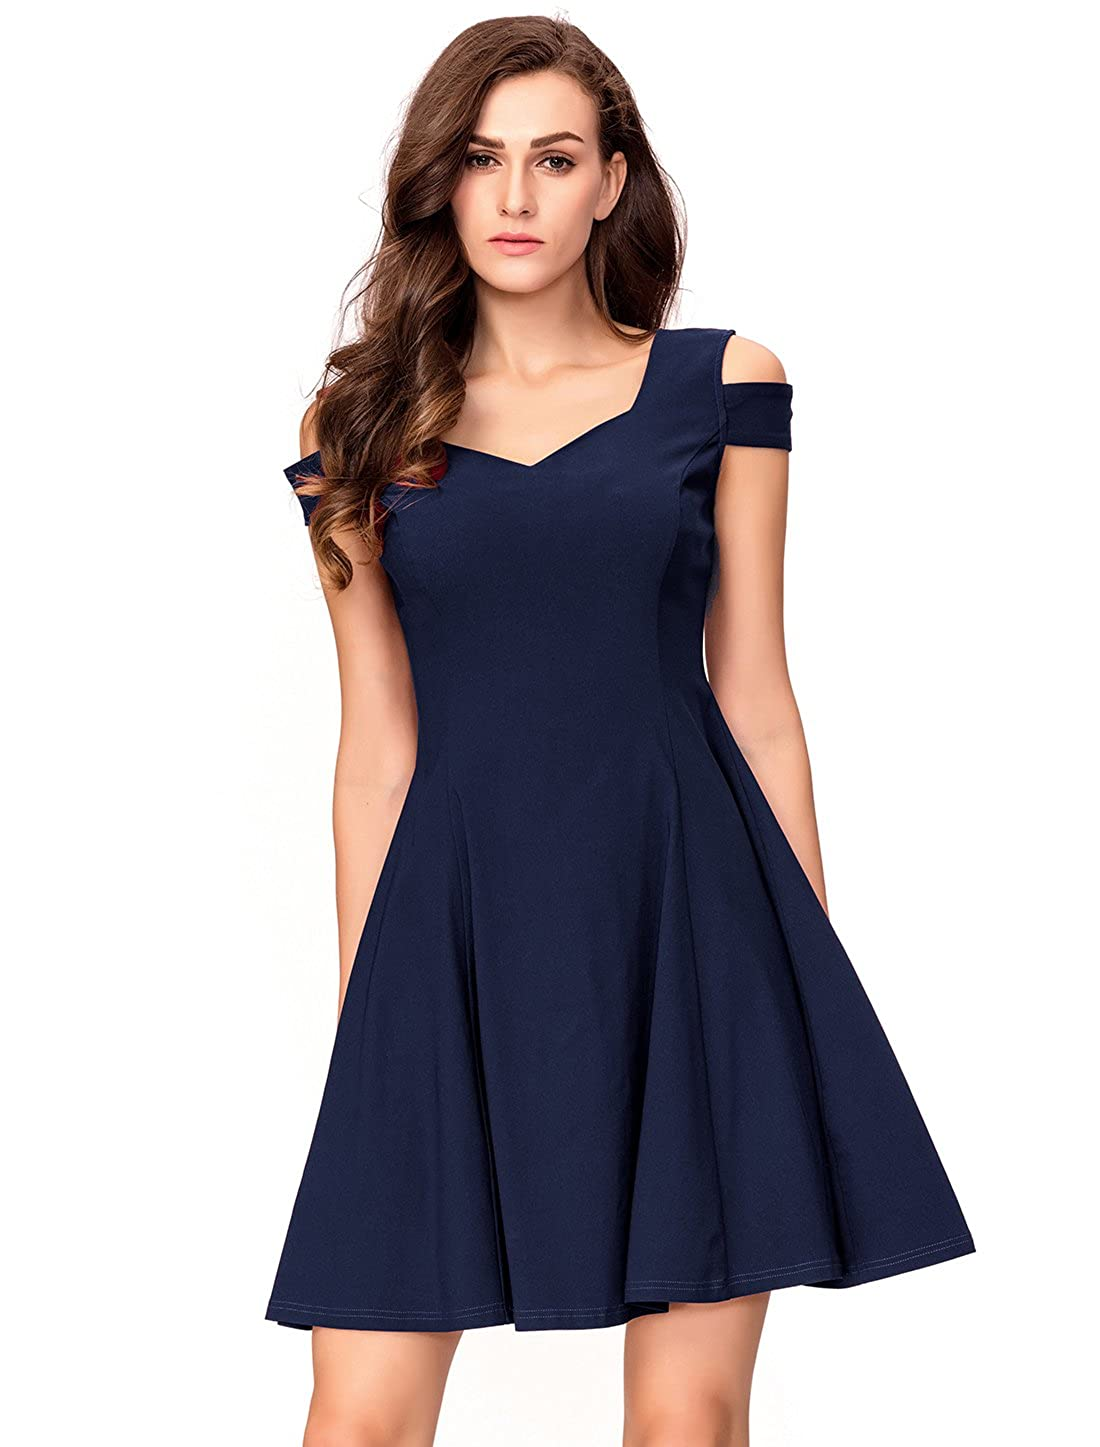 Navy InsNova Women's Summer Cold Shouder A Line Dresses for Party Wedding